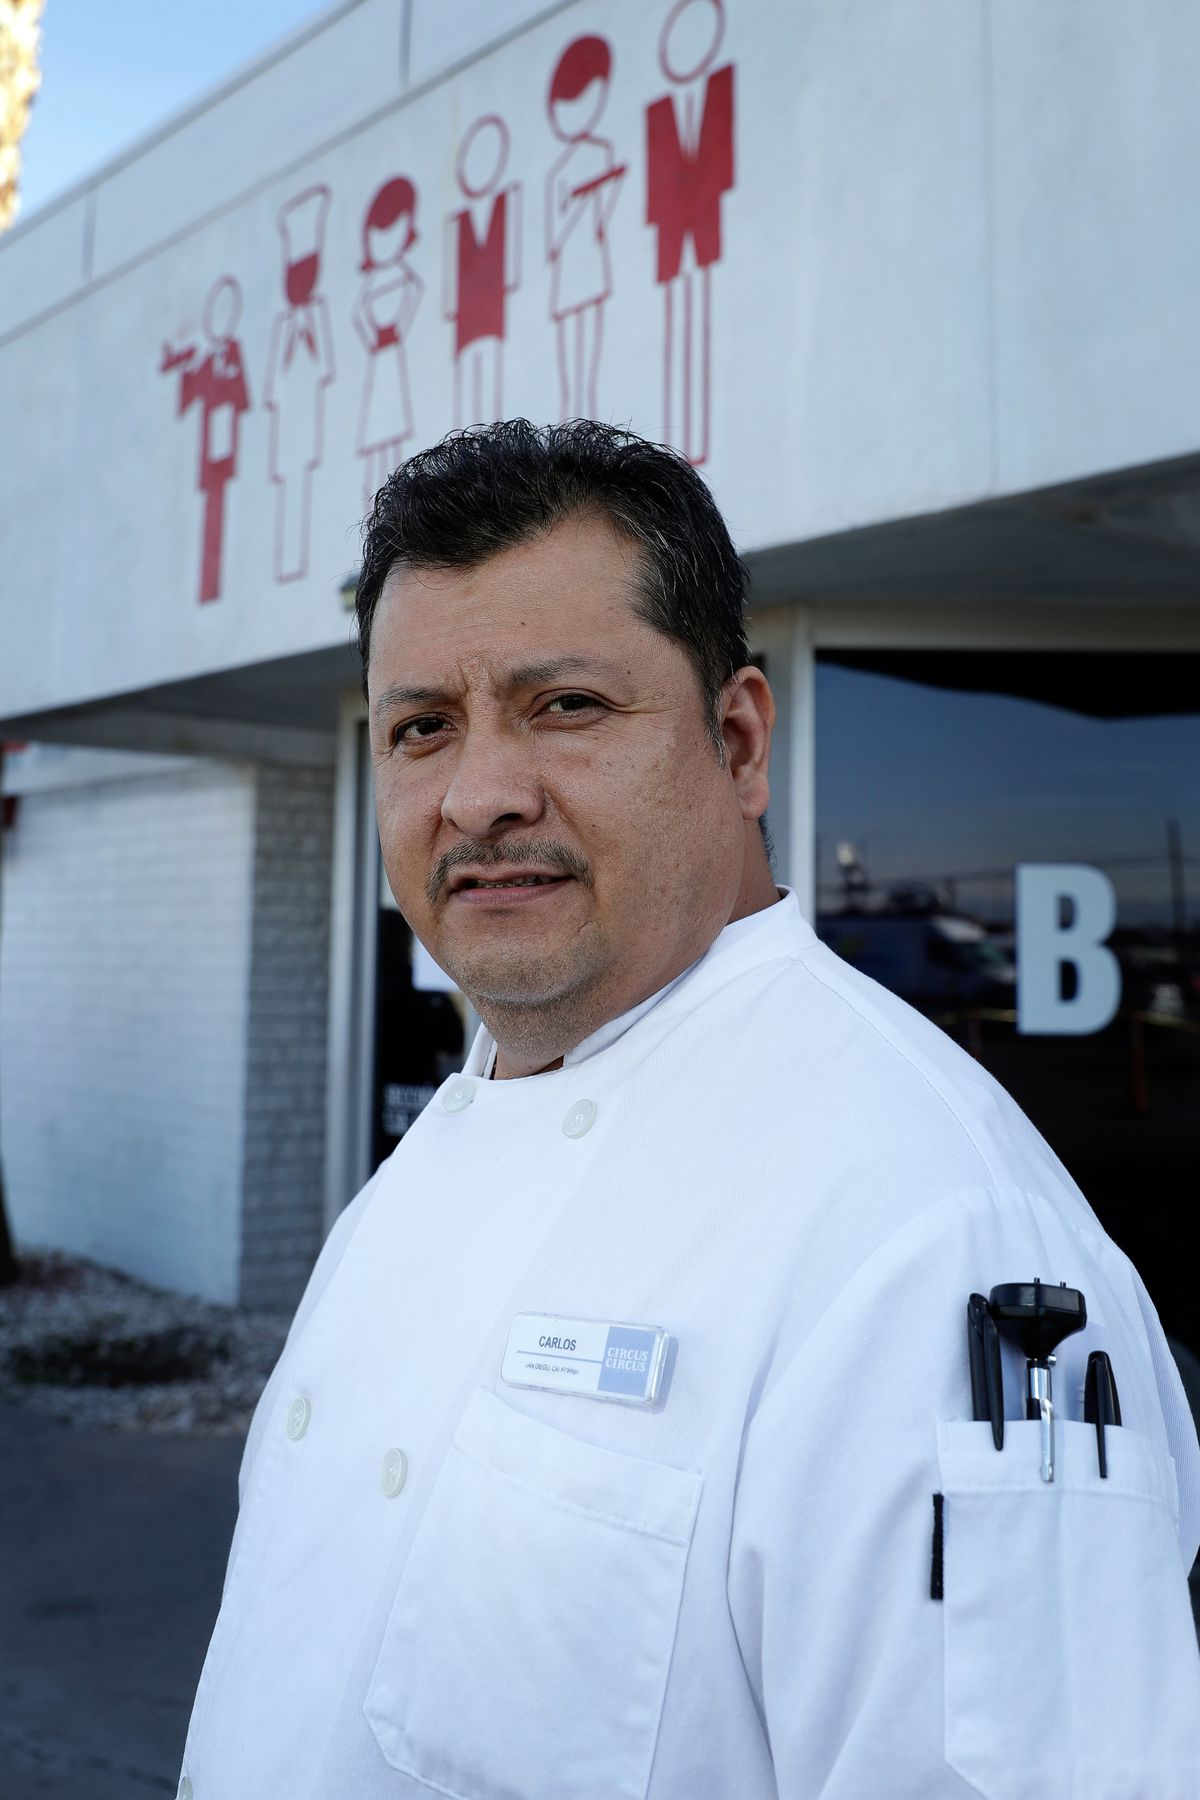 A man in a chef's coat looks into the camera.